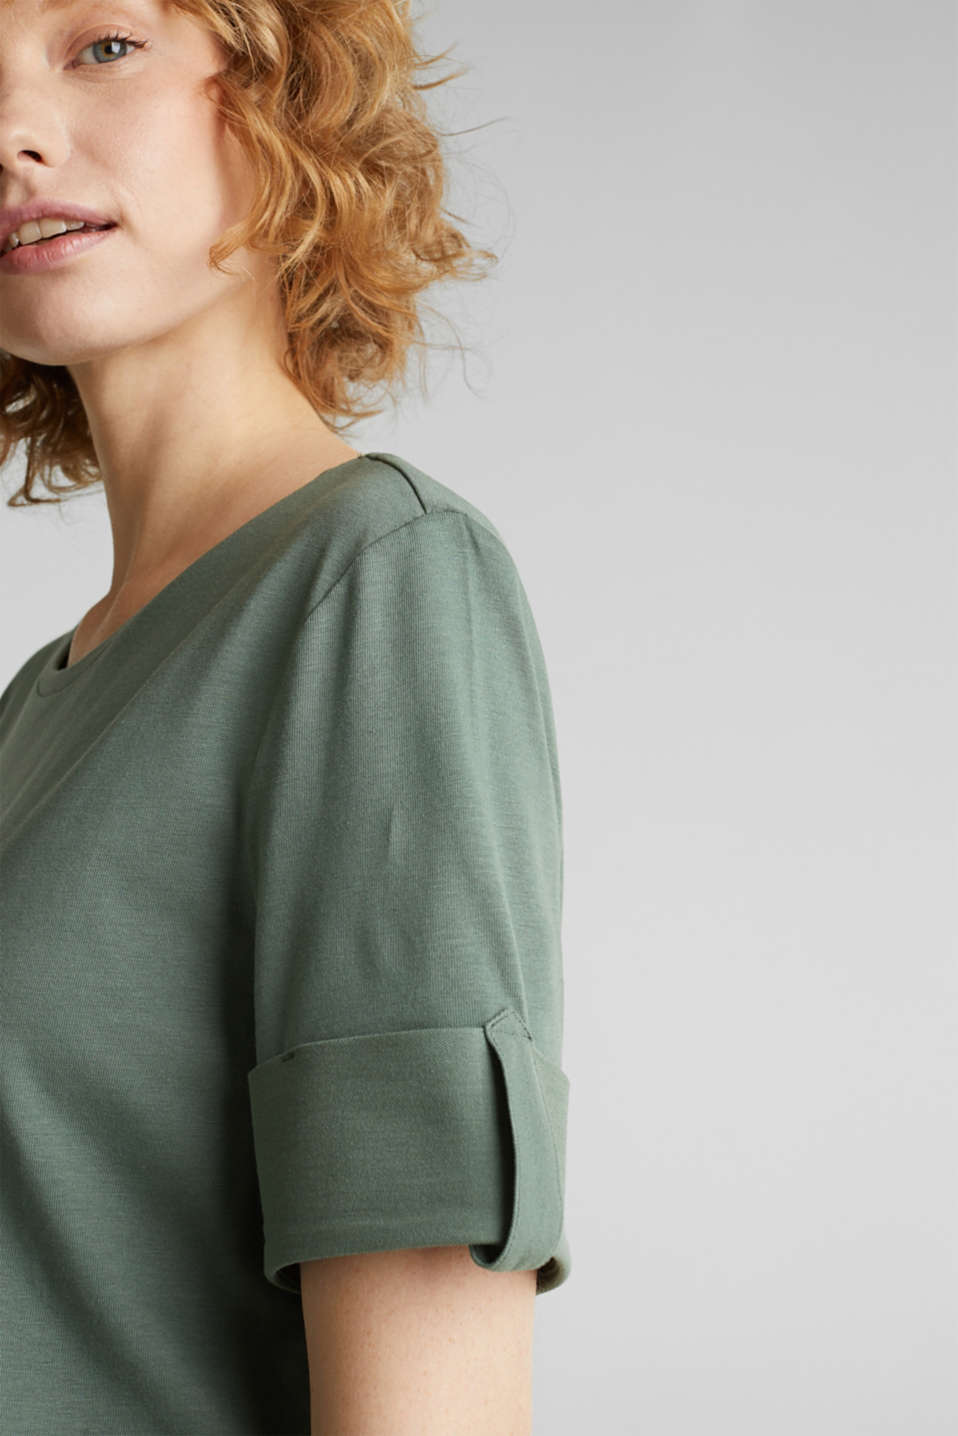 T-shirt with turn-up sleeves, KHAKI GREEN, detail image number 2